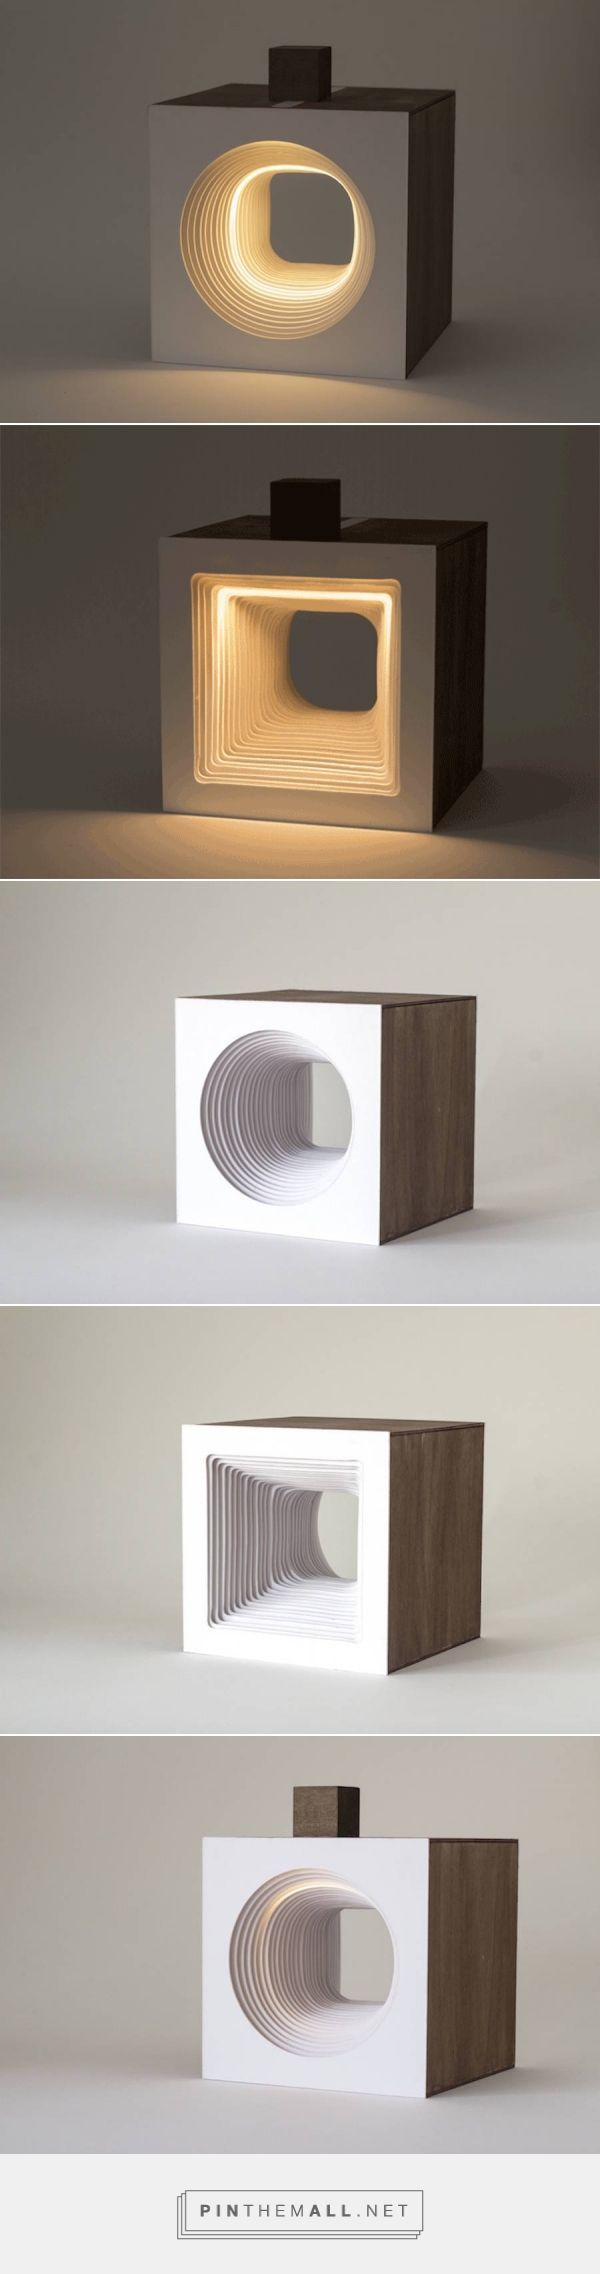 Sculptural Cube with Flowing Light – Fubiz Media - created via https://pinthemall.net